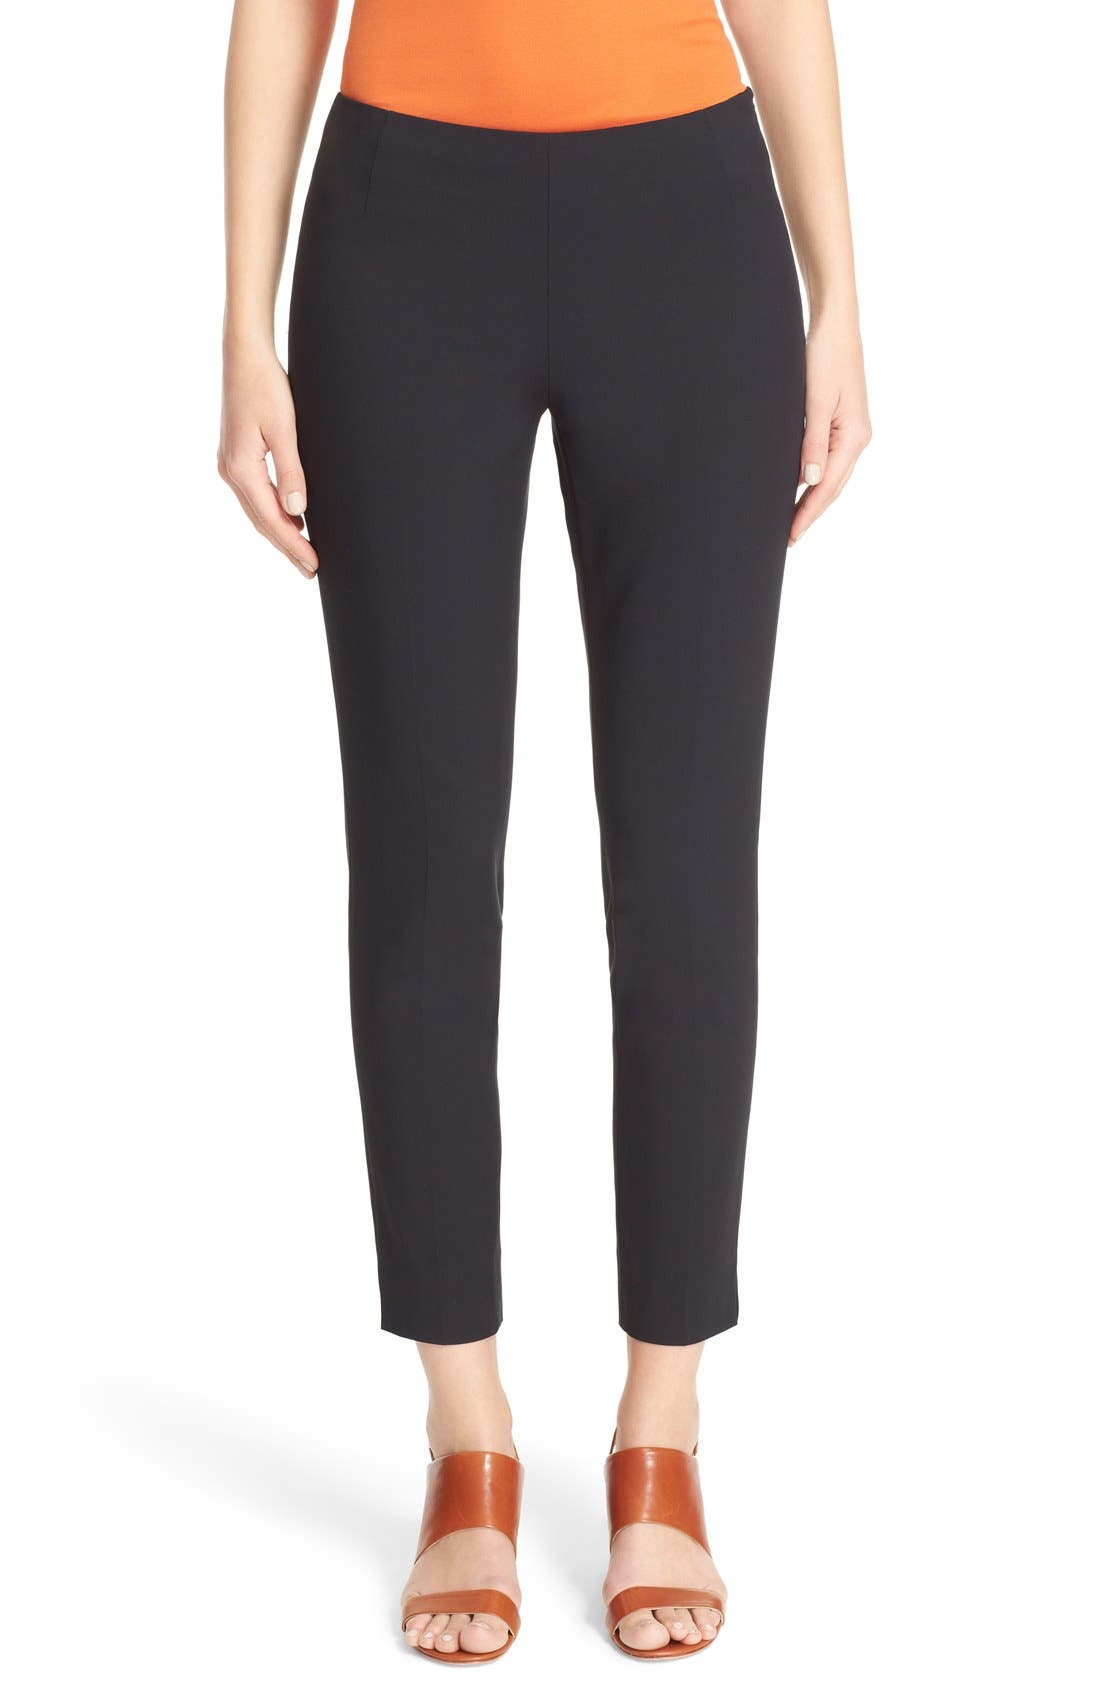 Alternate Image 1 Selected - Lafayette 148 New York 'Stanton' Slim Leg Ankle Pants (Regular & Petite)